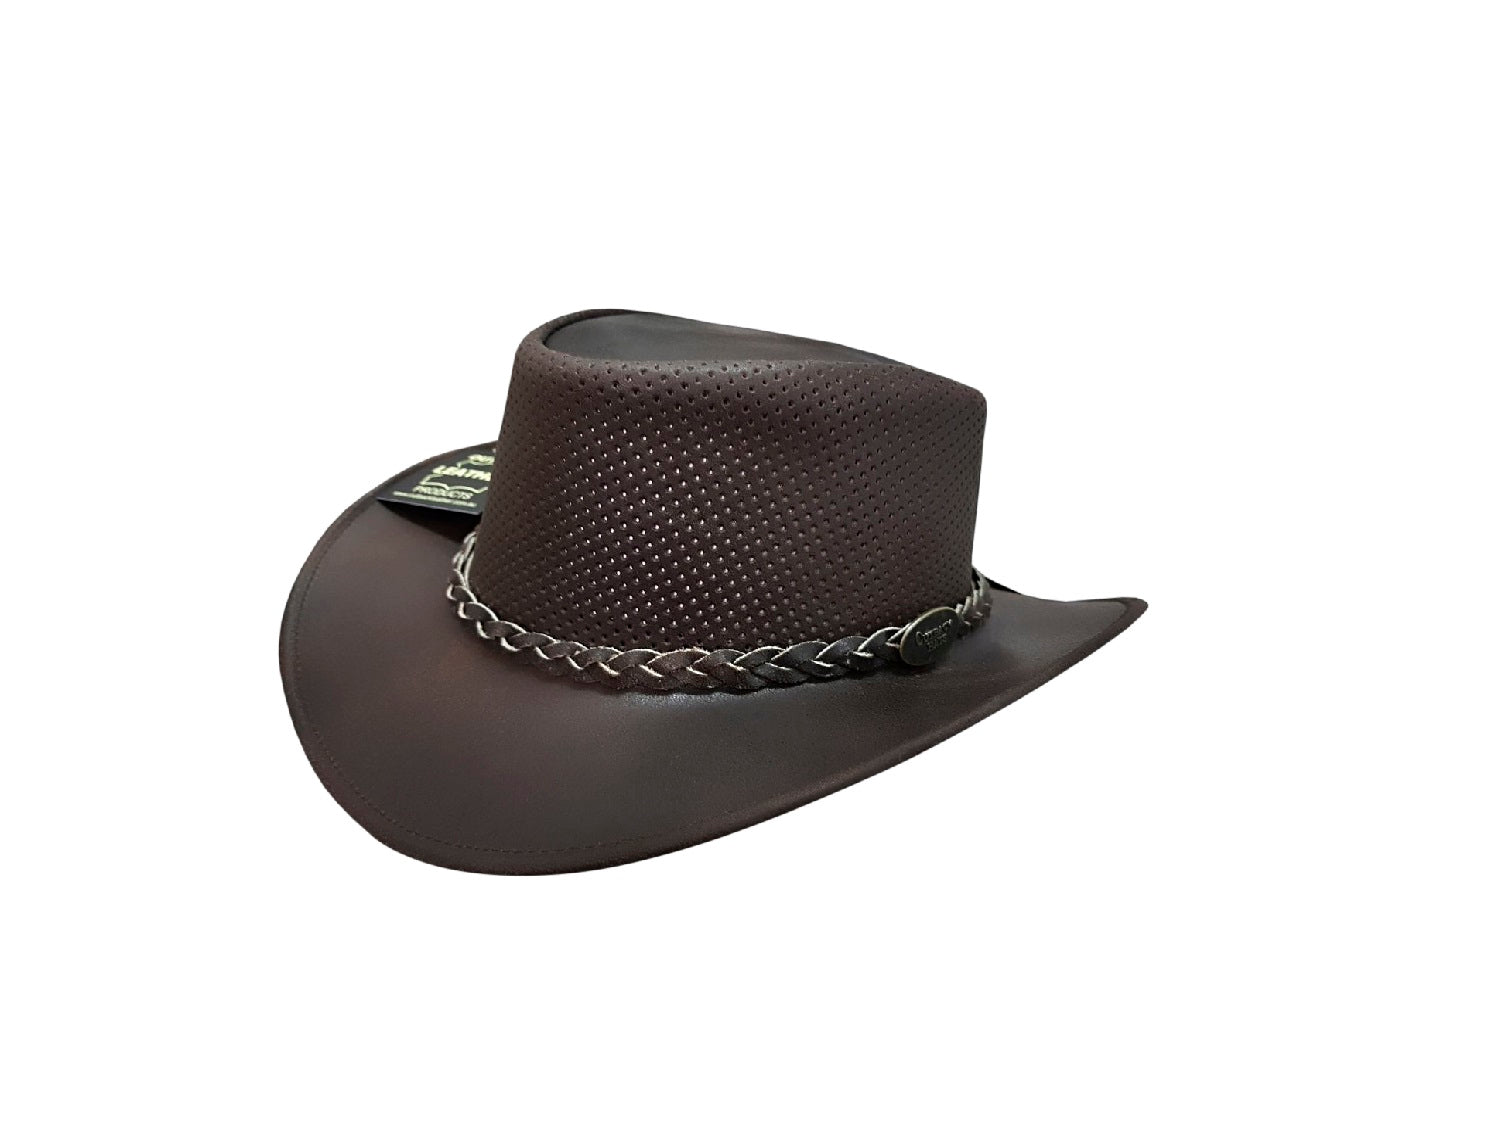 0120b707939 Hats - Outback Leather Products